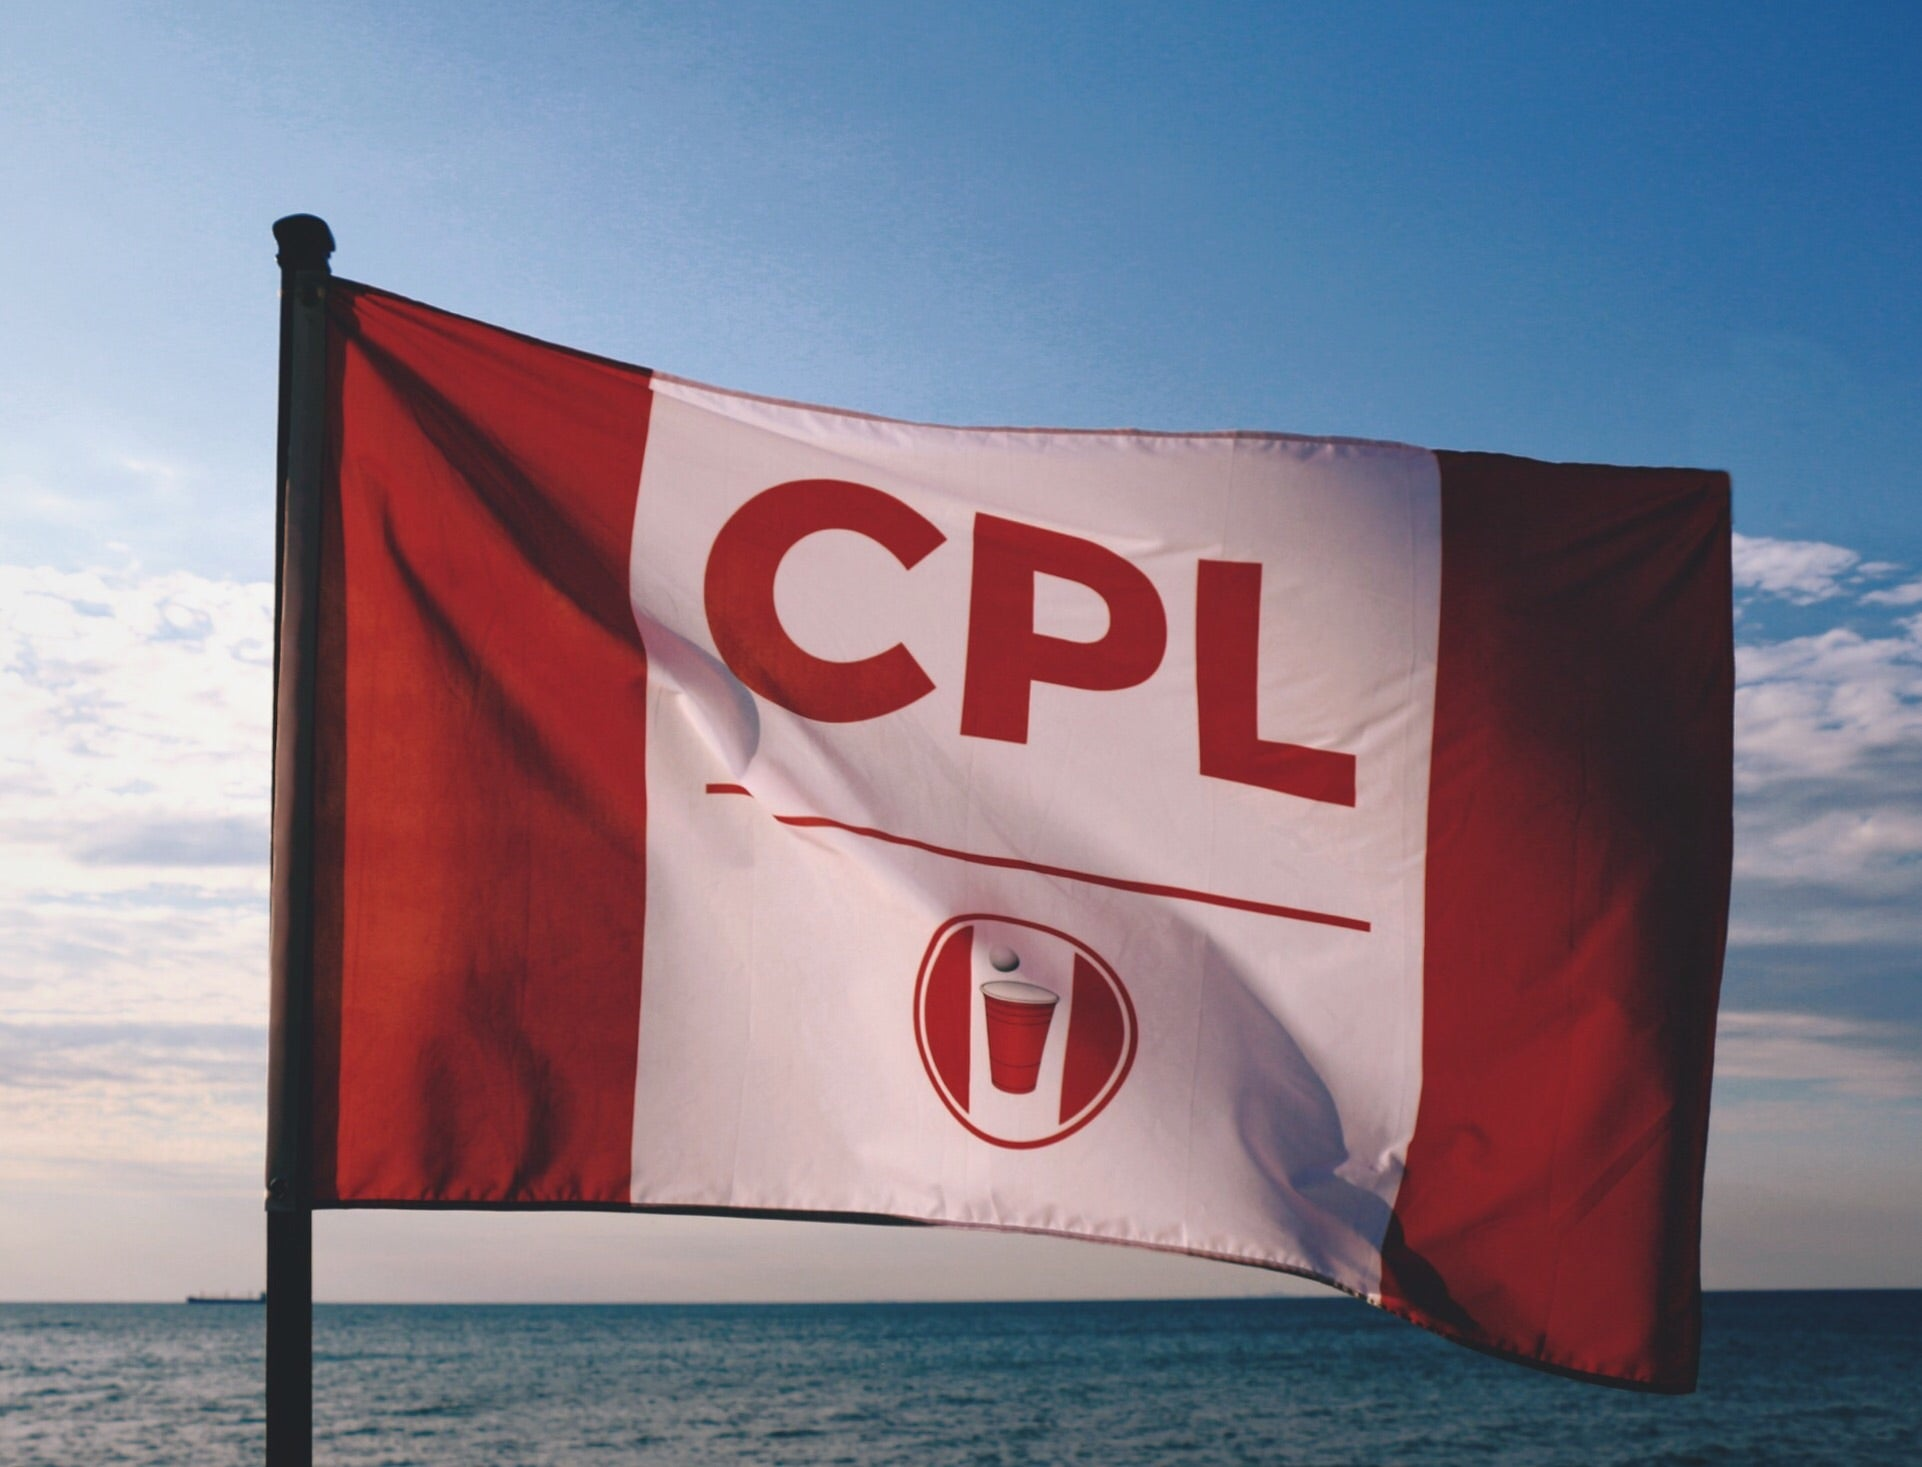 The CPL Flag